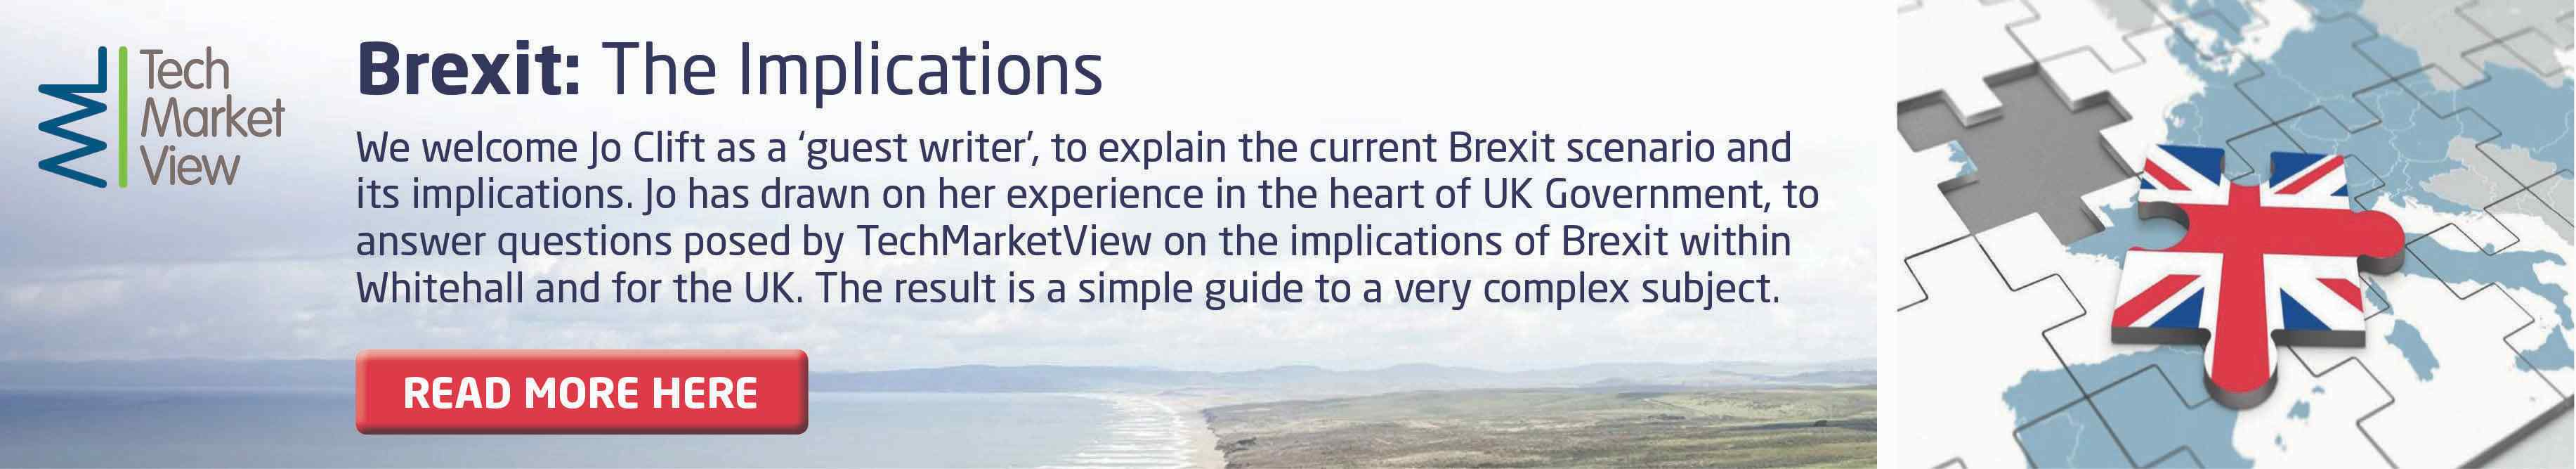 PSV_Brexit: The Implications